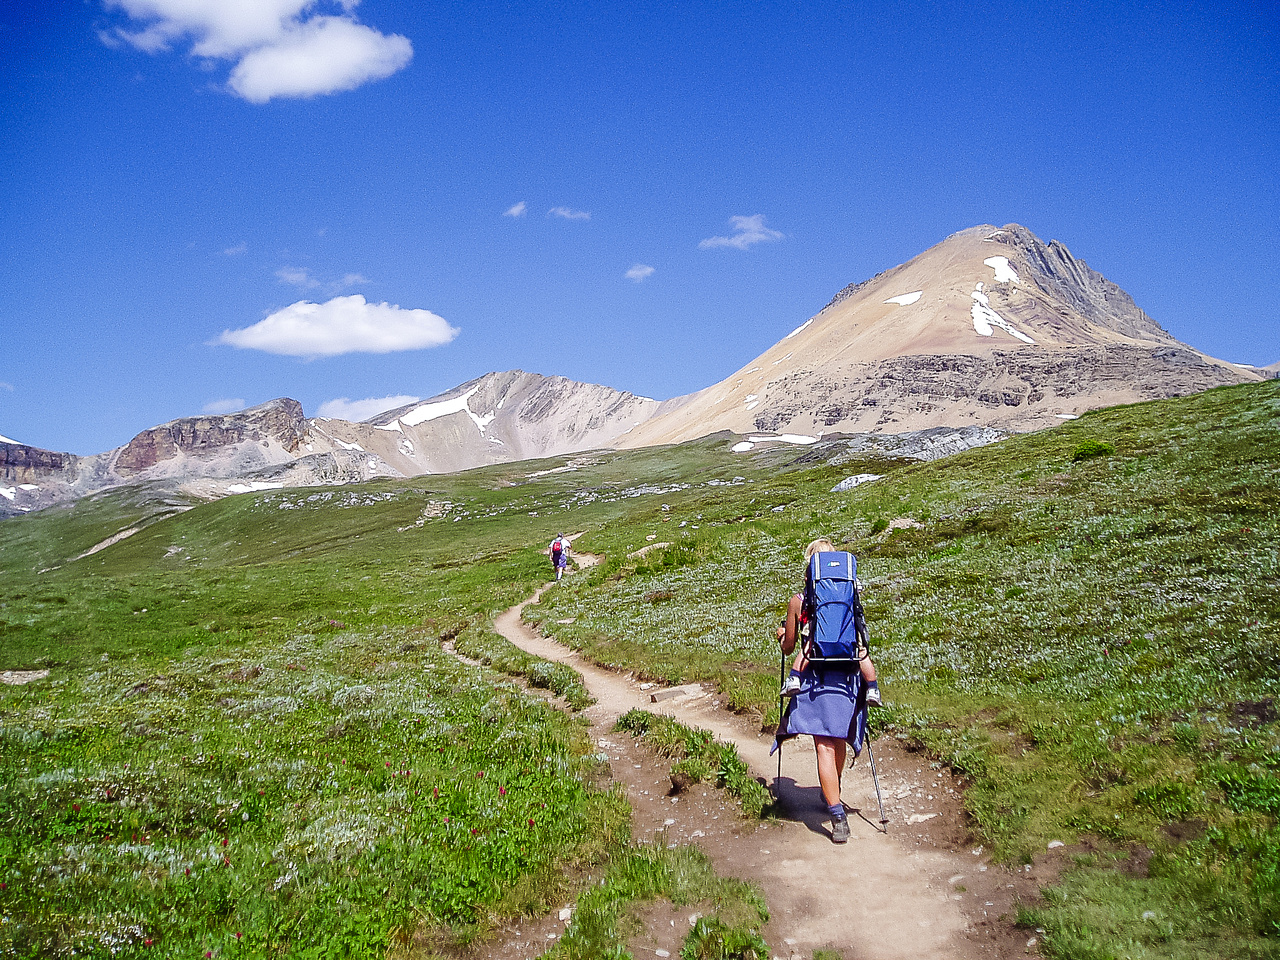 Hiking the lovely alpine meadows.